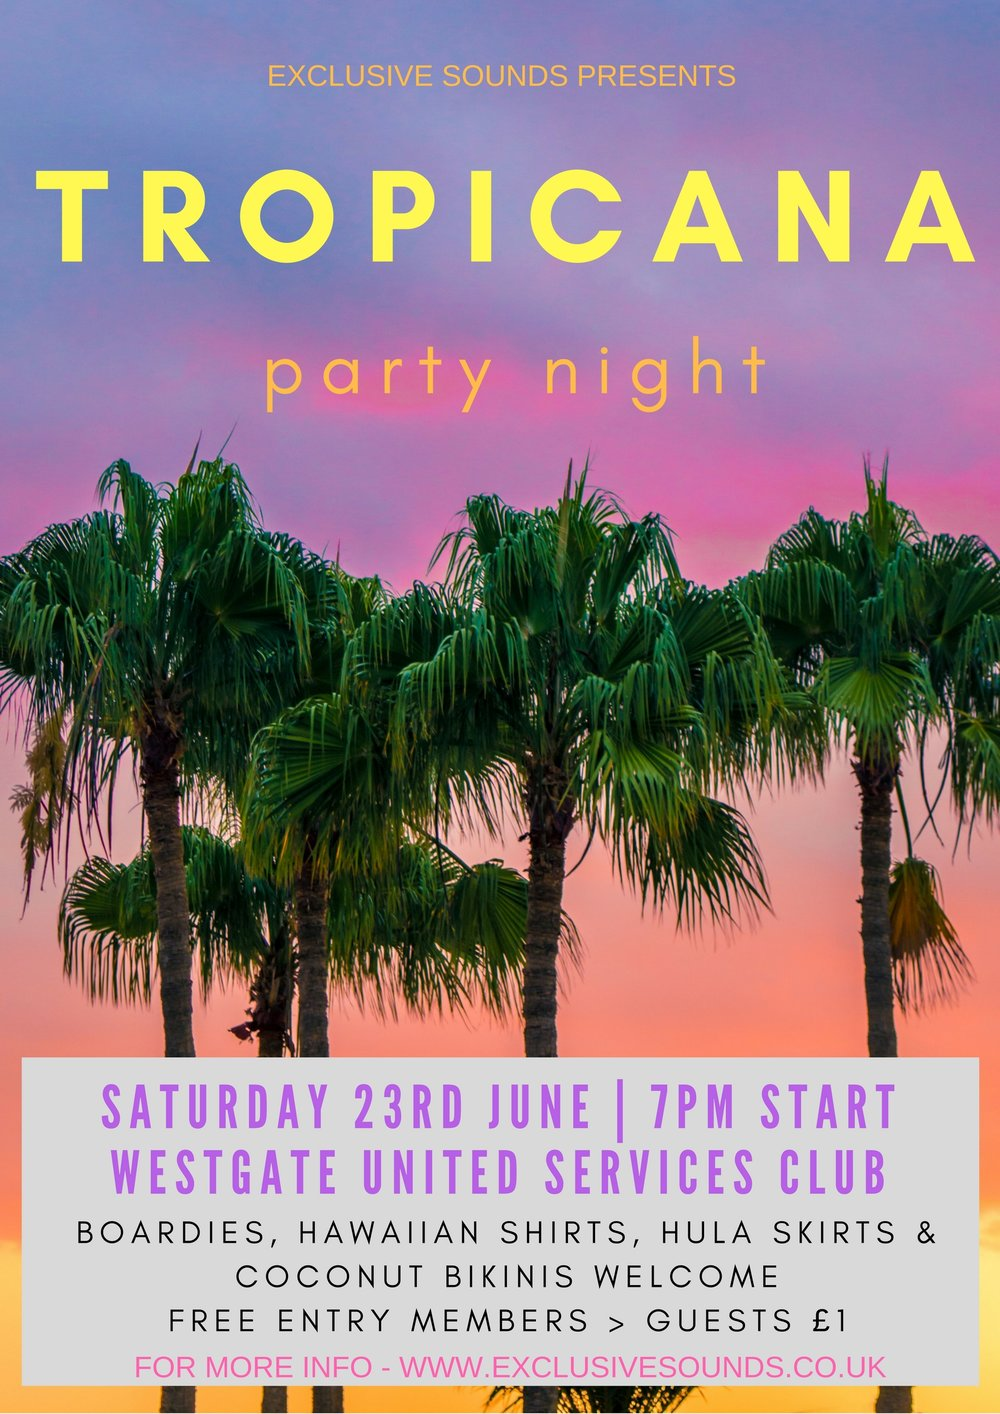 Tropicana Party Night > Westgate United Services Club, 23rd June 2018 - 7pm